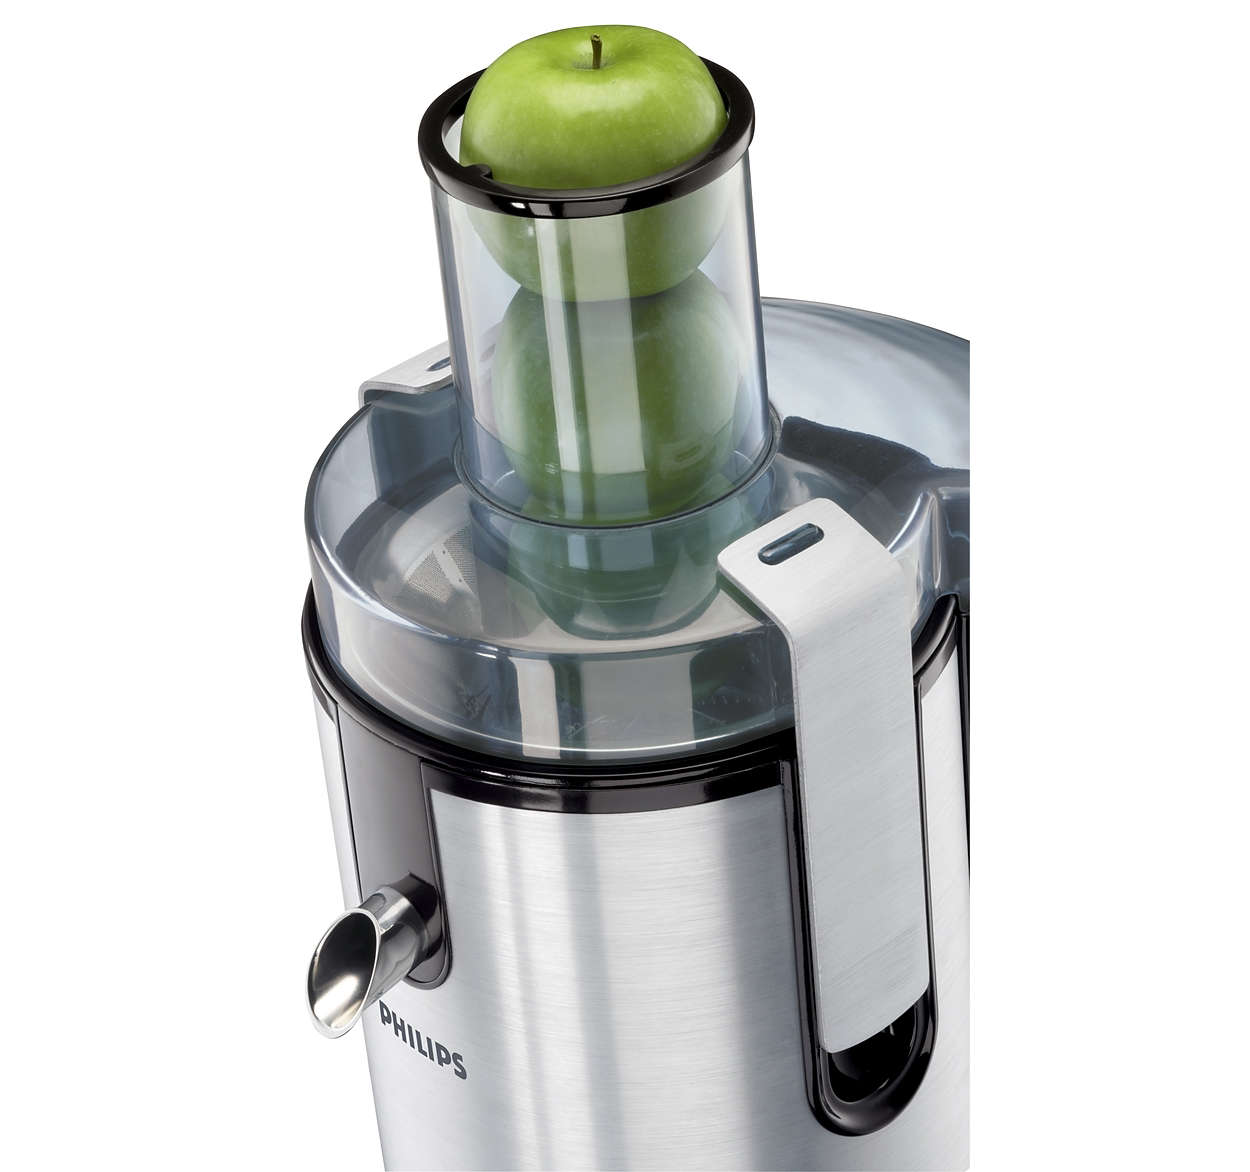 My Philips juicer does not work | Philips